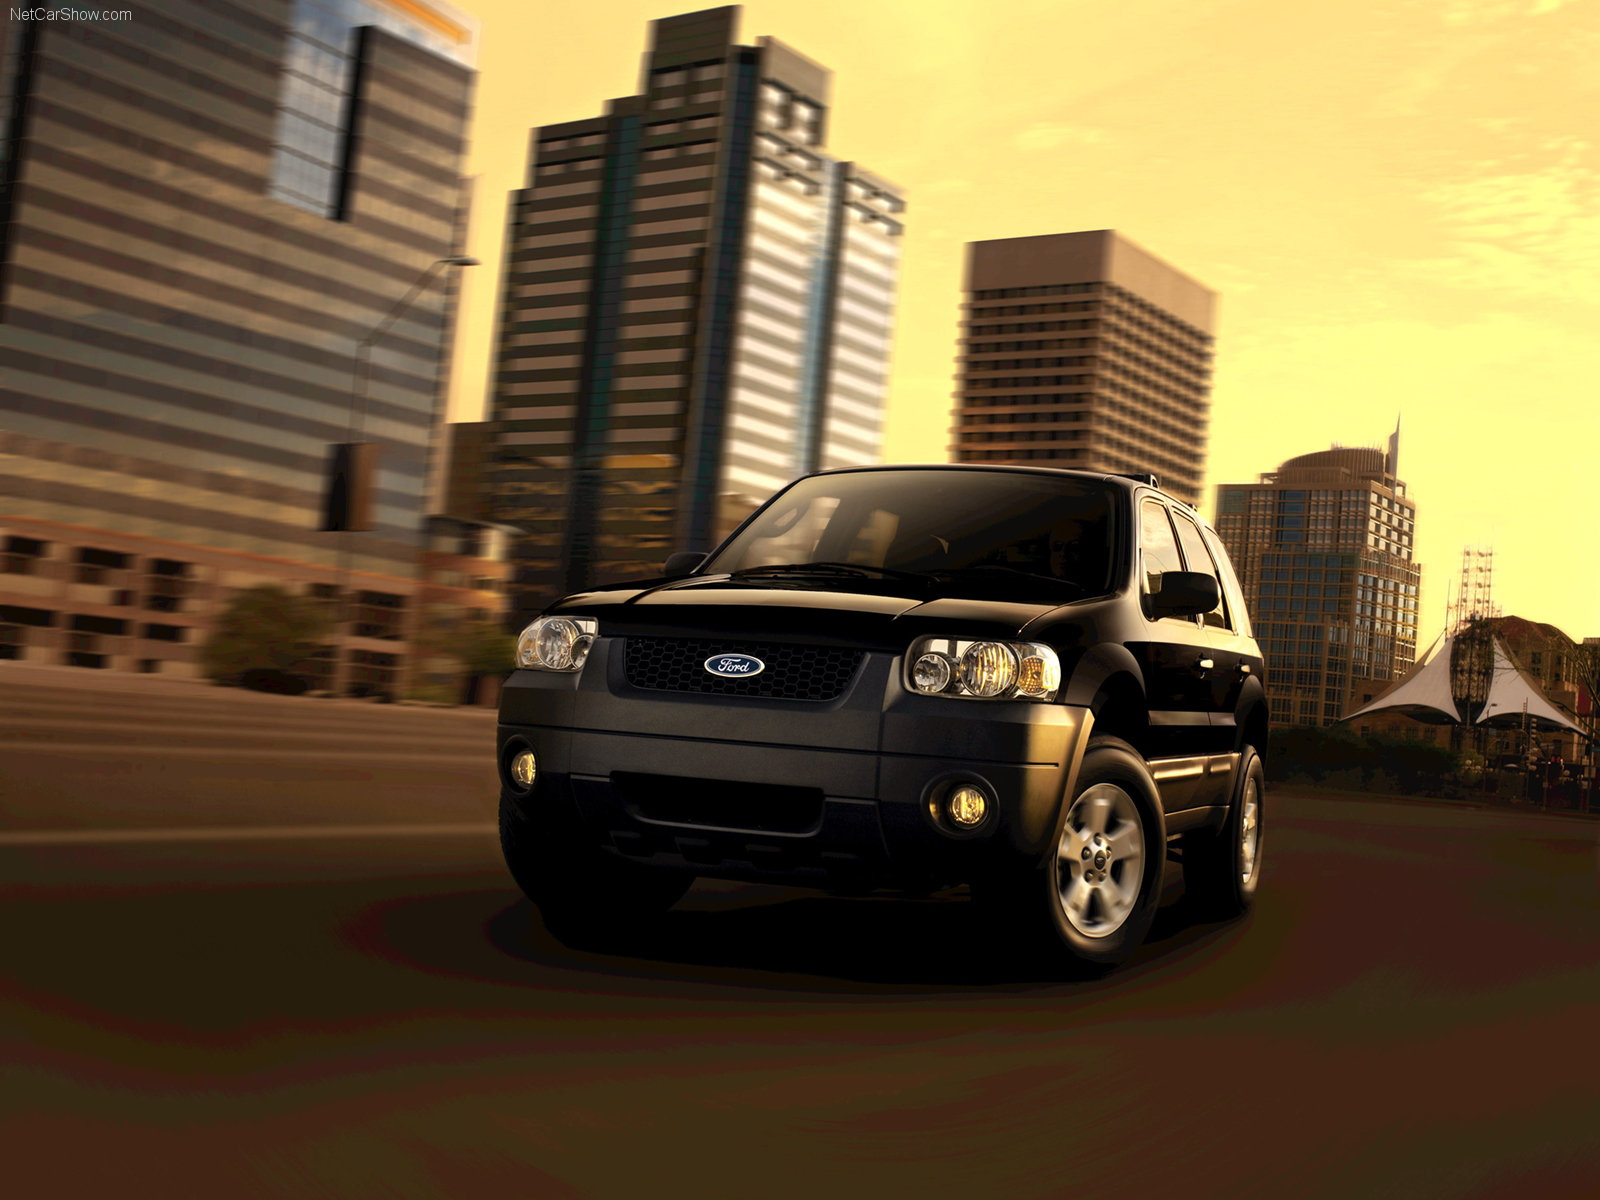 Ford Escape photo 33205